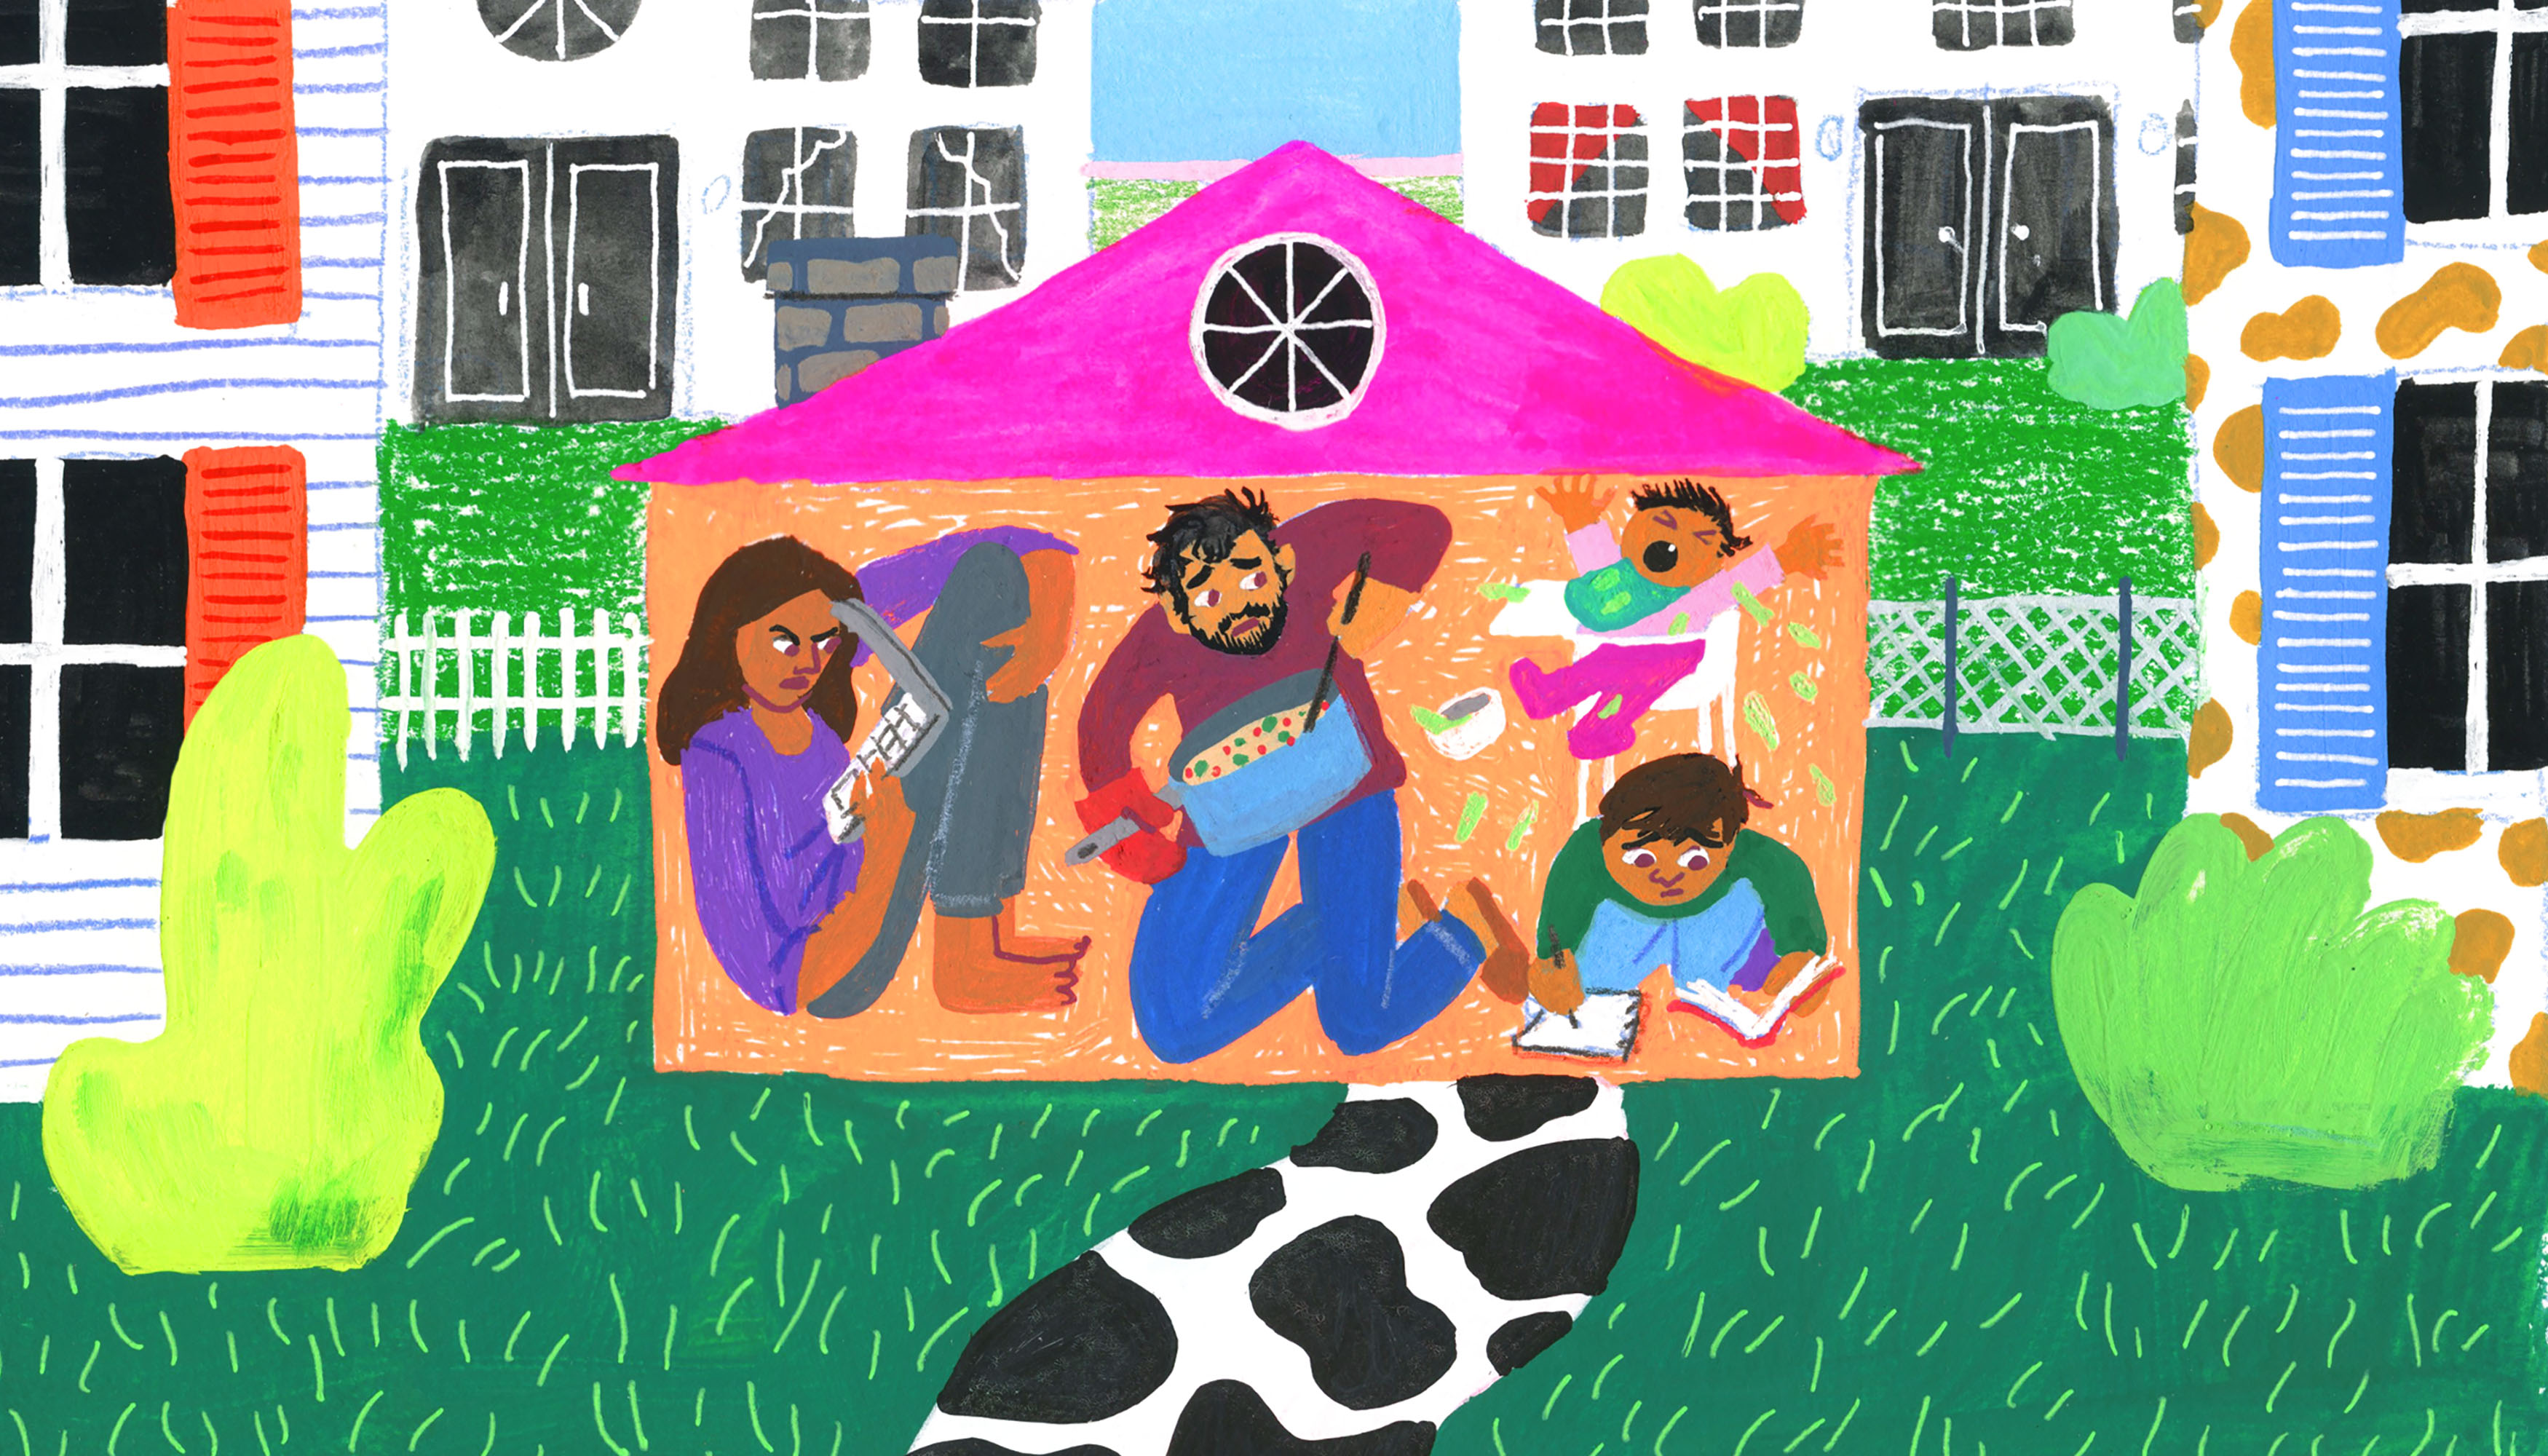 A family crams into a crowded house. There is chaos as one parent tries to work on a laptop, while the other cooks. A baby is crying in a highchair while another child is doing homework in a book. Illustration.